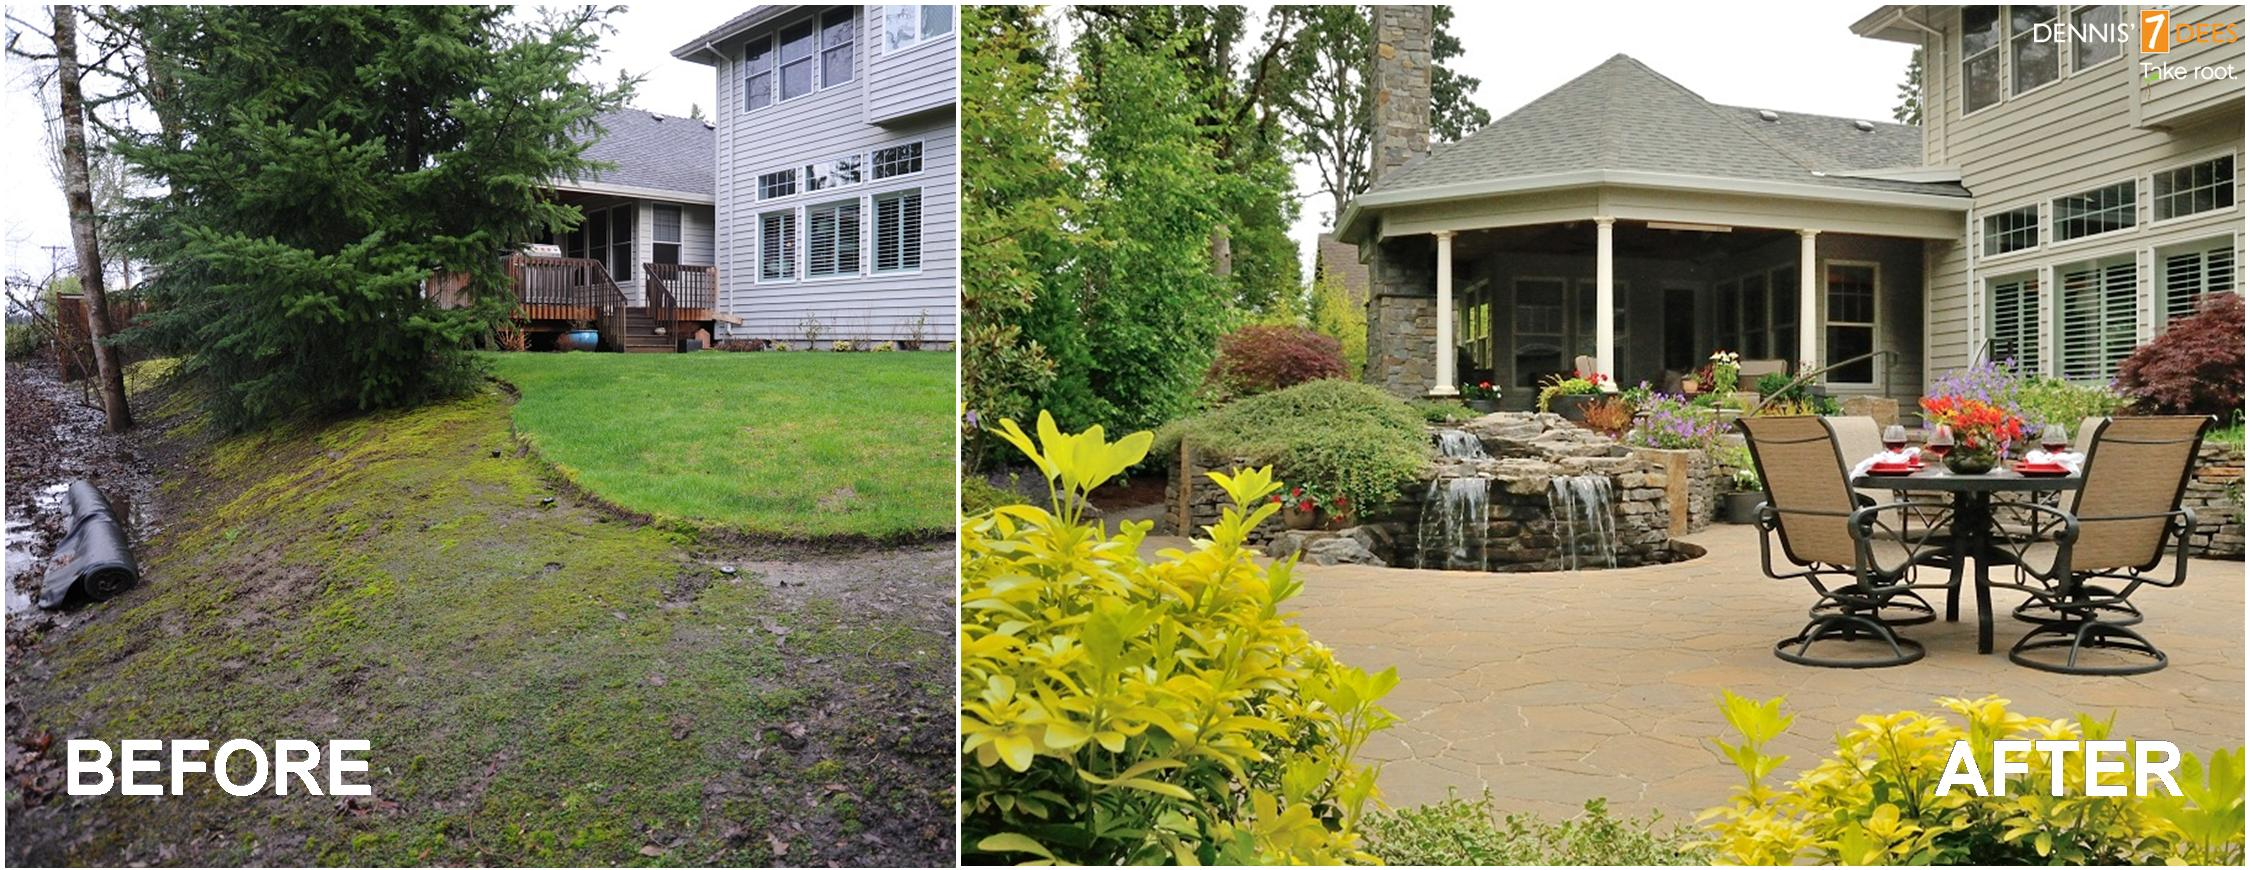 7 Easy Budget-Friendly Backyard Makeovers - RE/MAX Reinvented on Front Yard Renovation Ideas id=37128